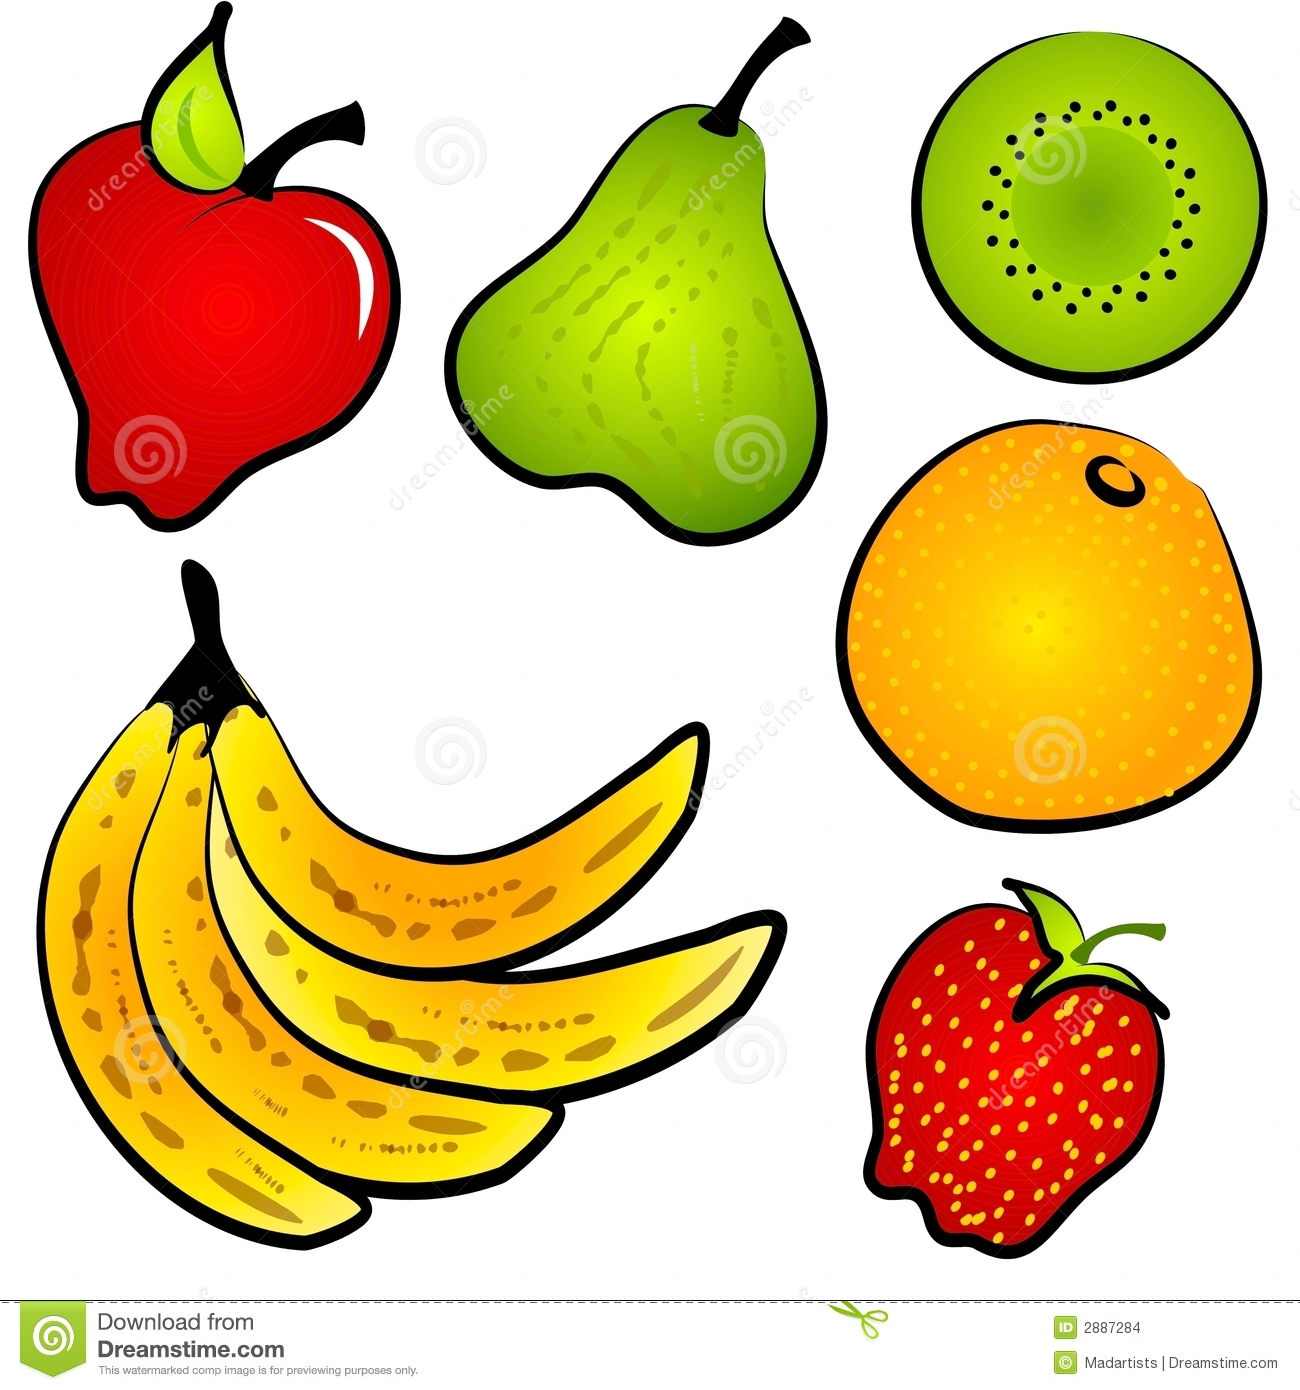 Free Fruit Clip Art Cartoon also Banana Fruit Wallpaper Hd Pictures further Banana furthermore Royalty Free Stock Images Fruit Background Texture Bright Colorful Pattern Image29110059 furthermore Fruits Clipart. on oranges and bananas cartoon